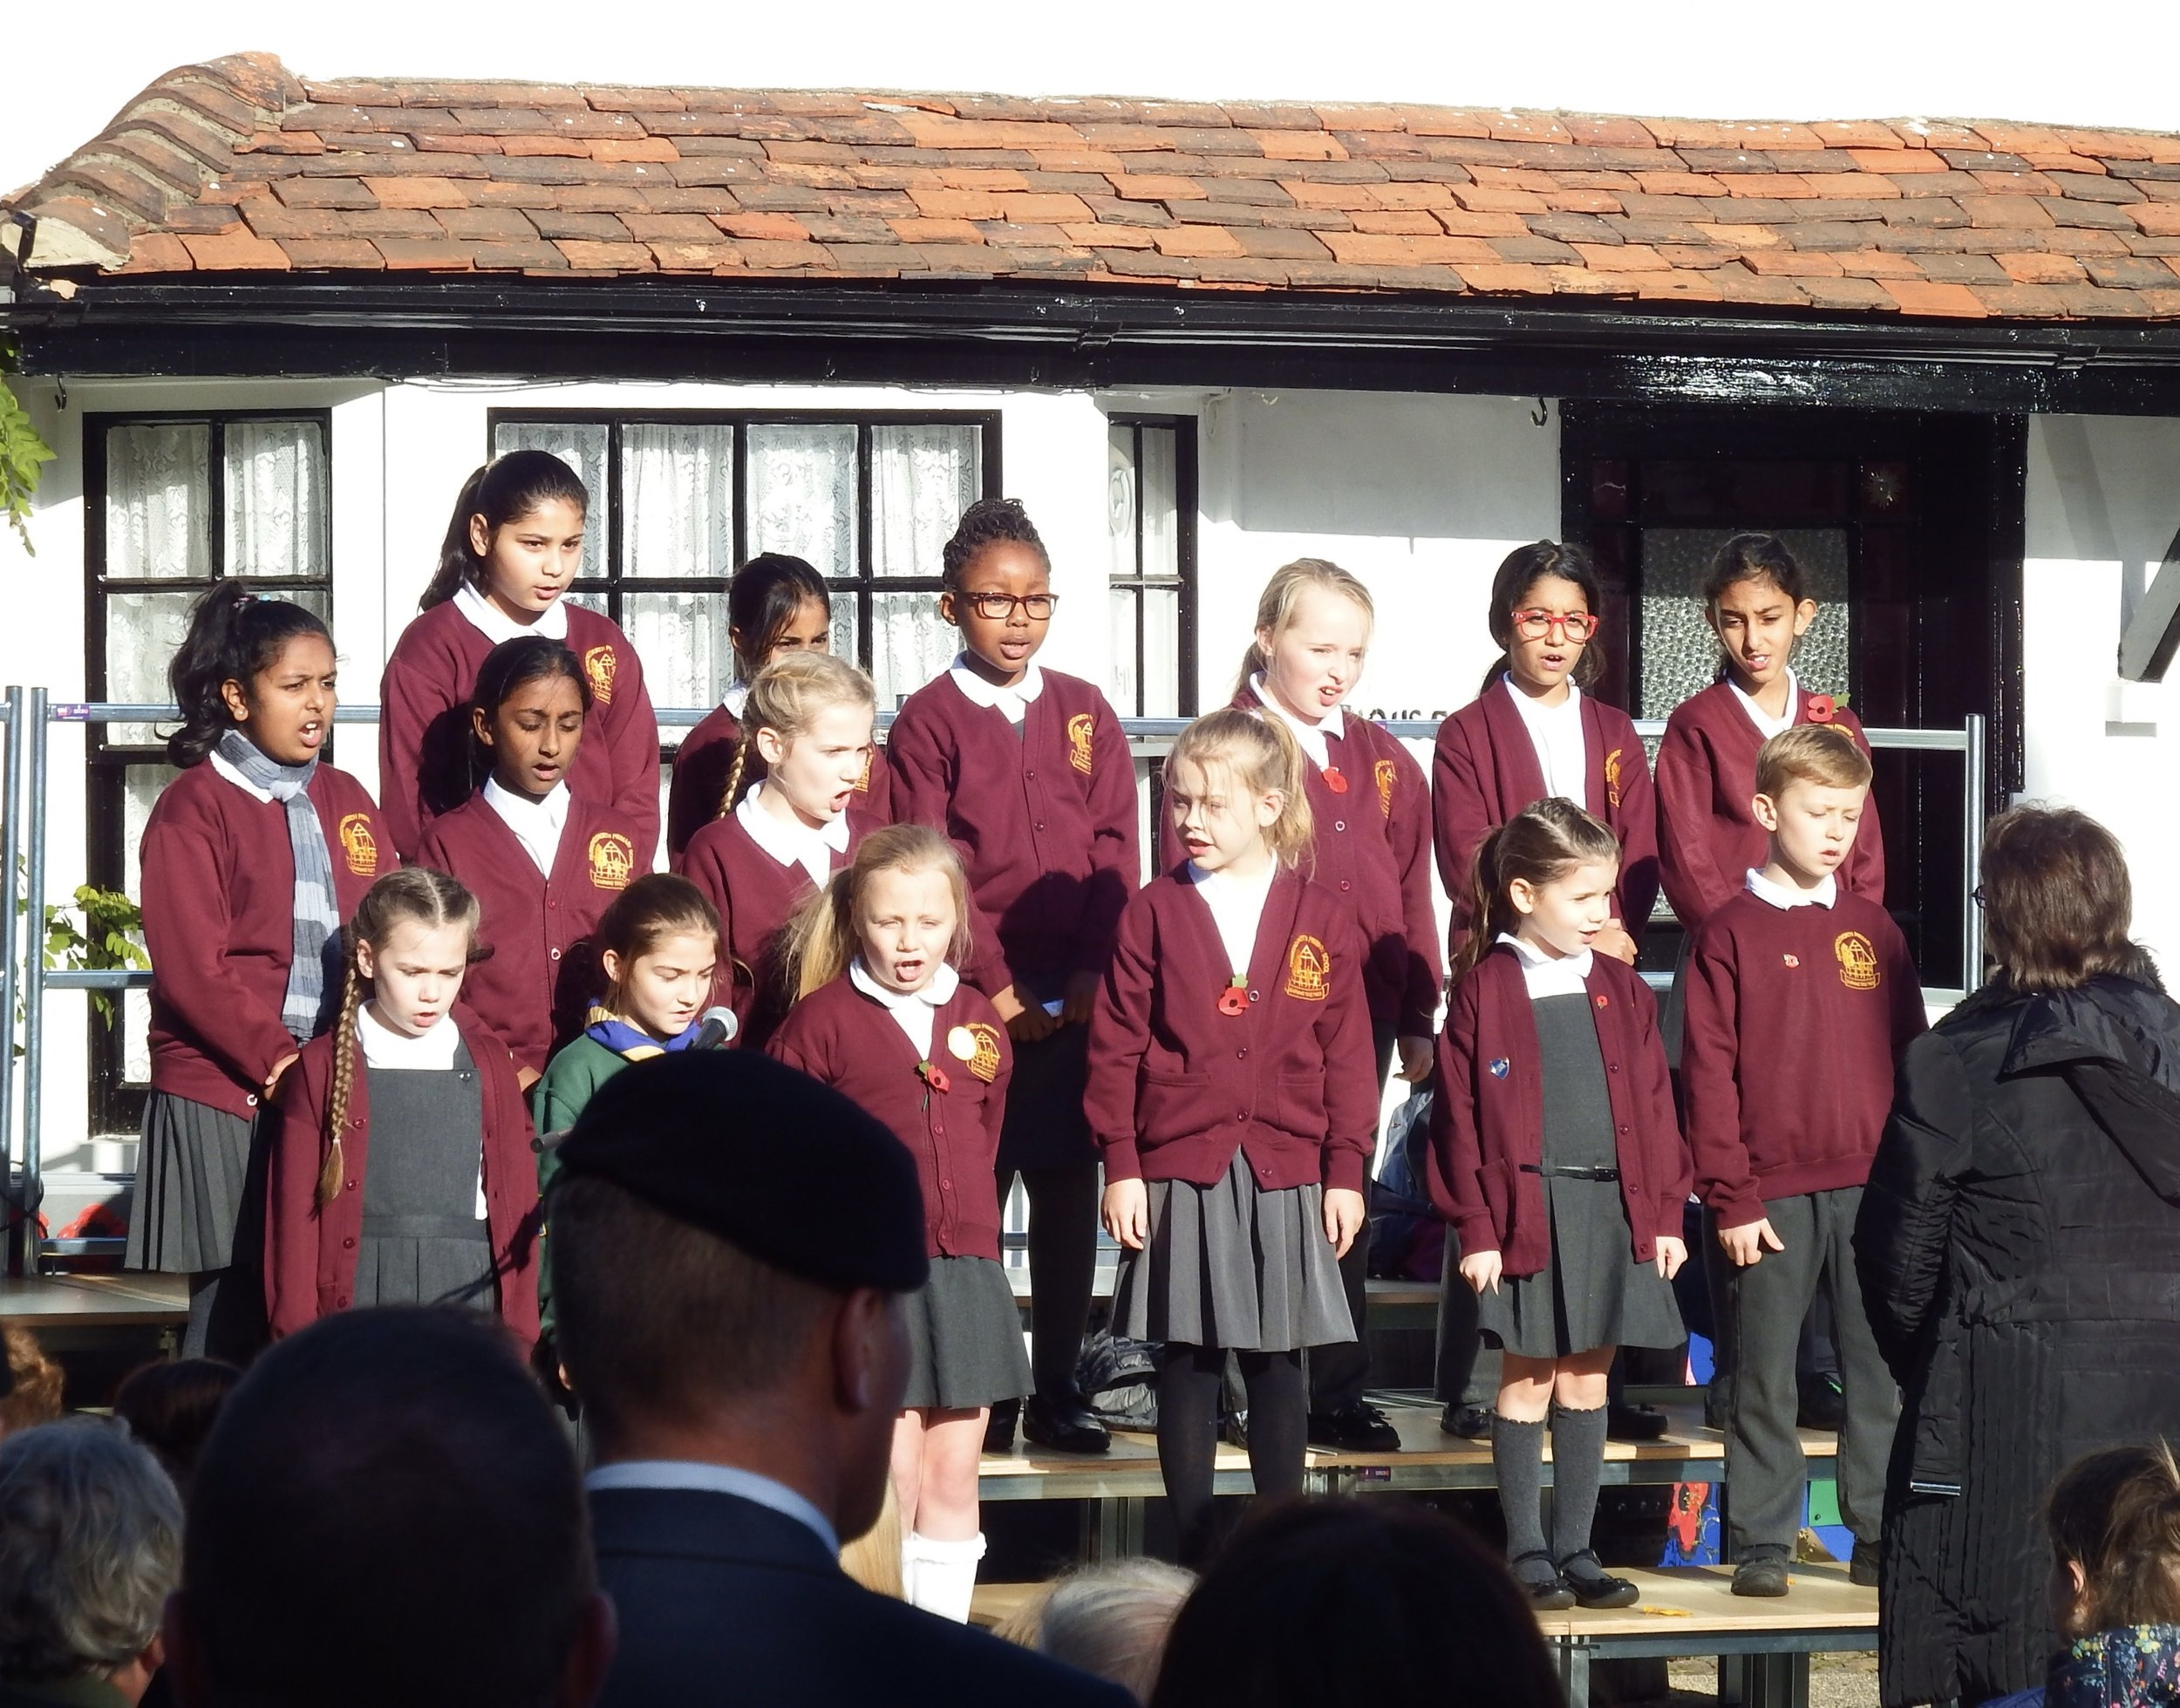 A performance by children from Harmondsworth Primary School